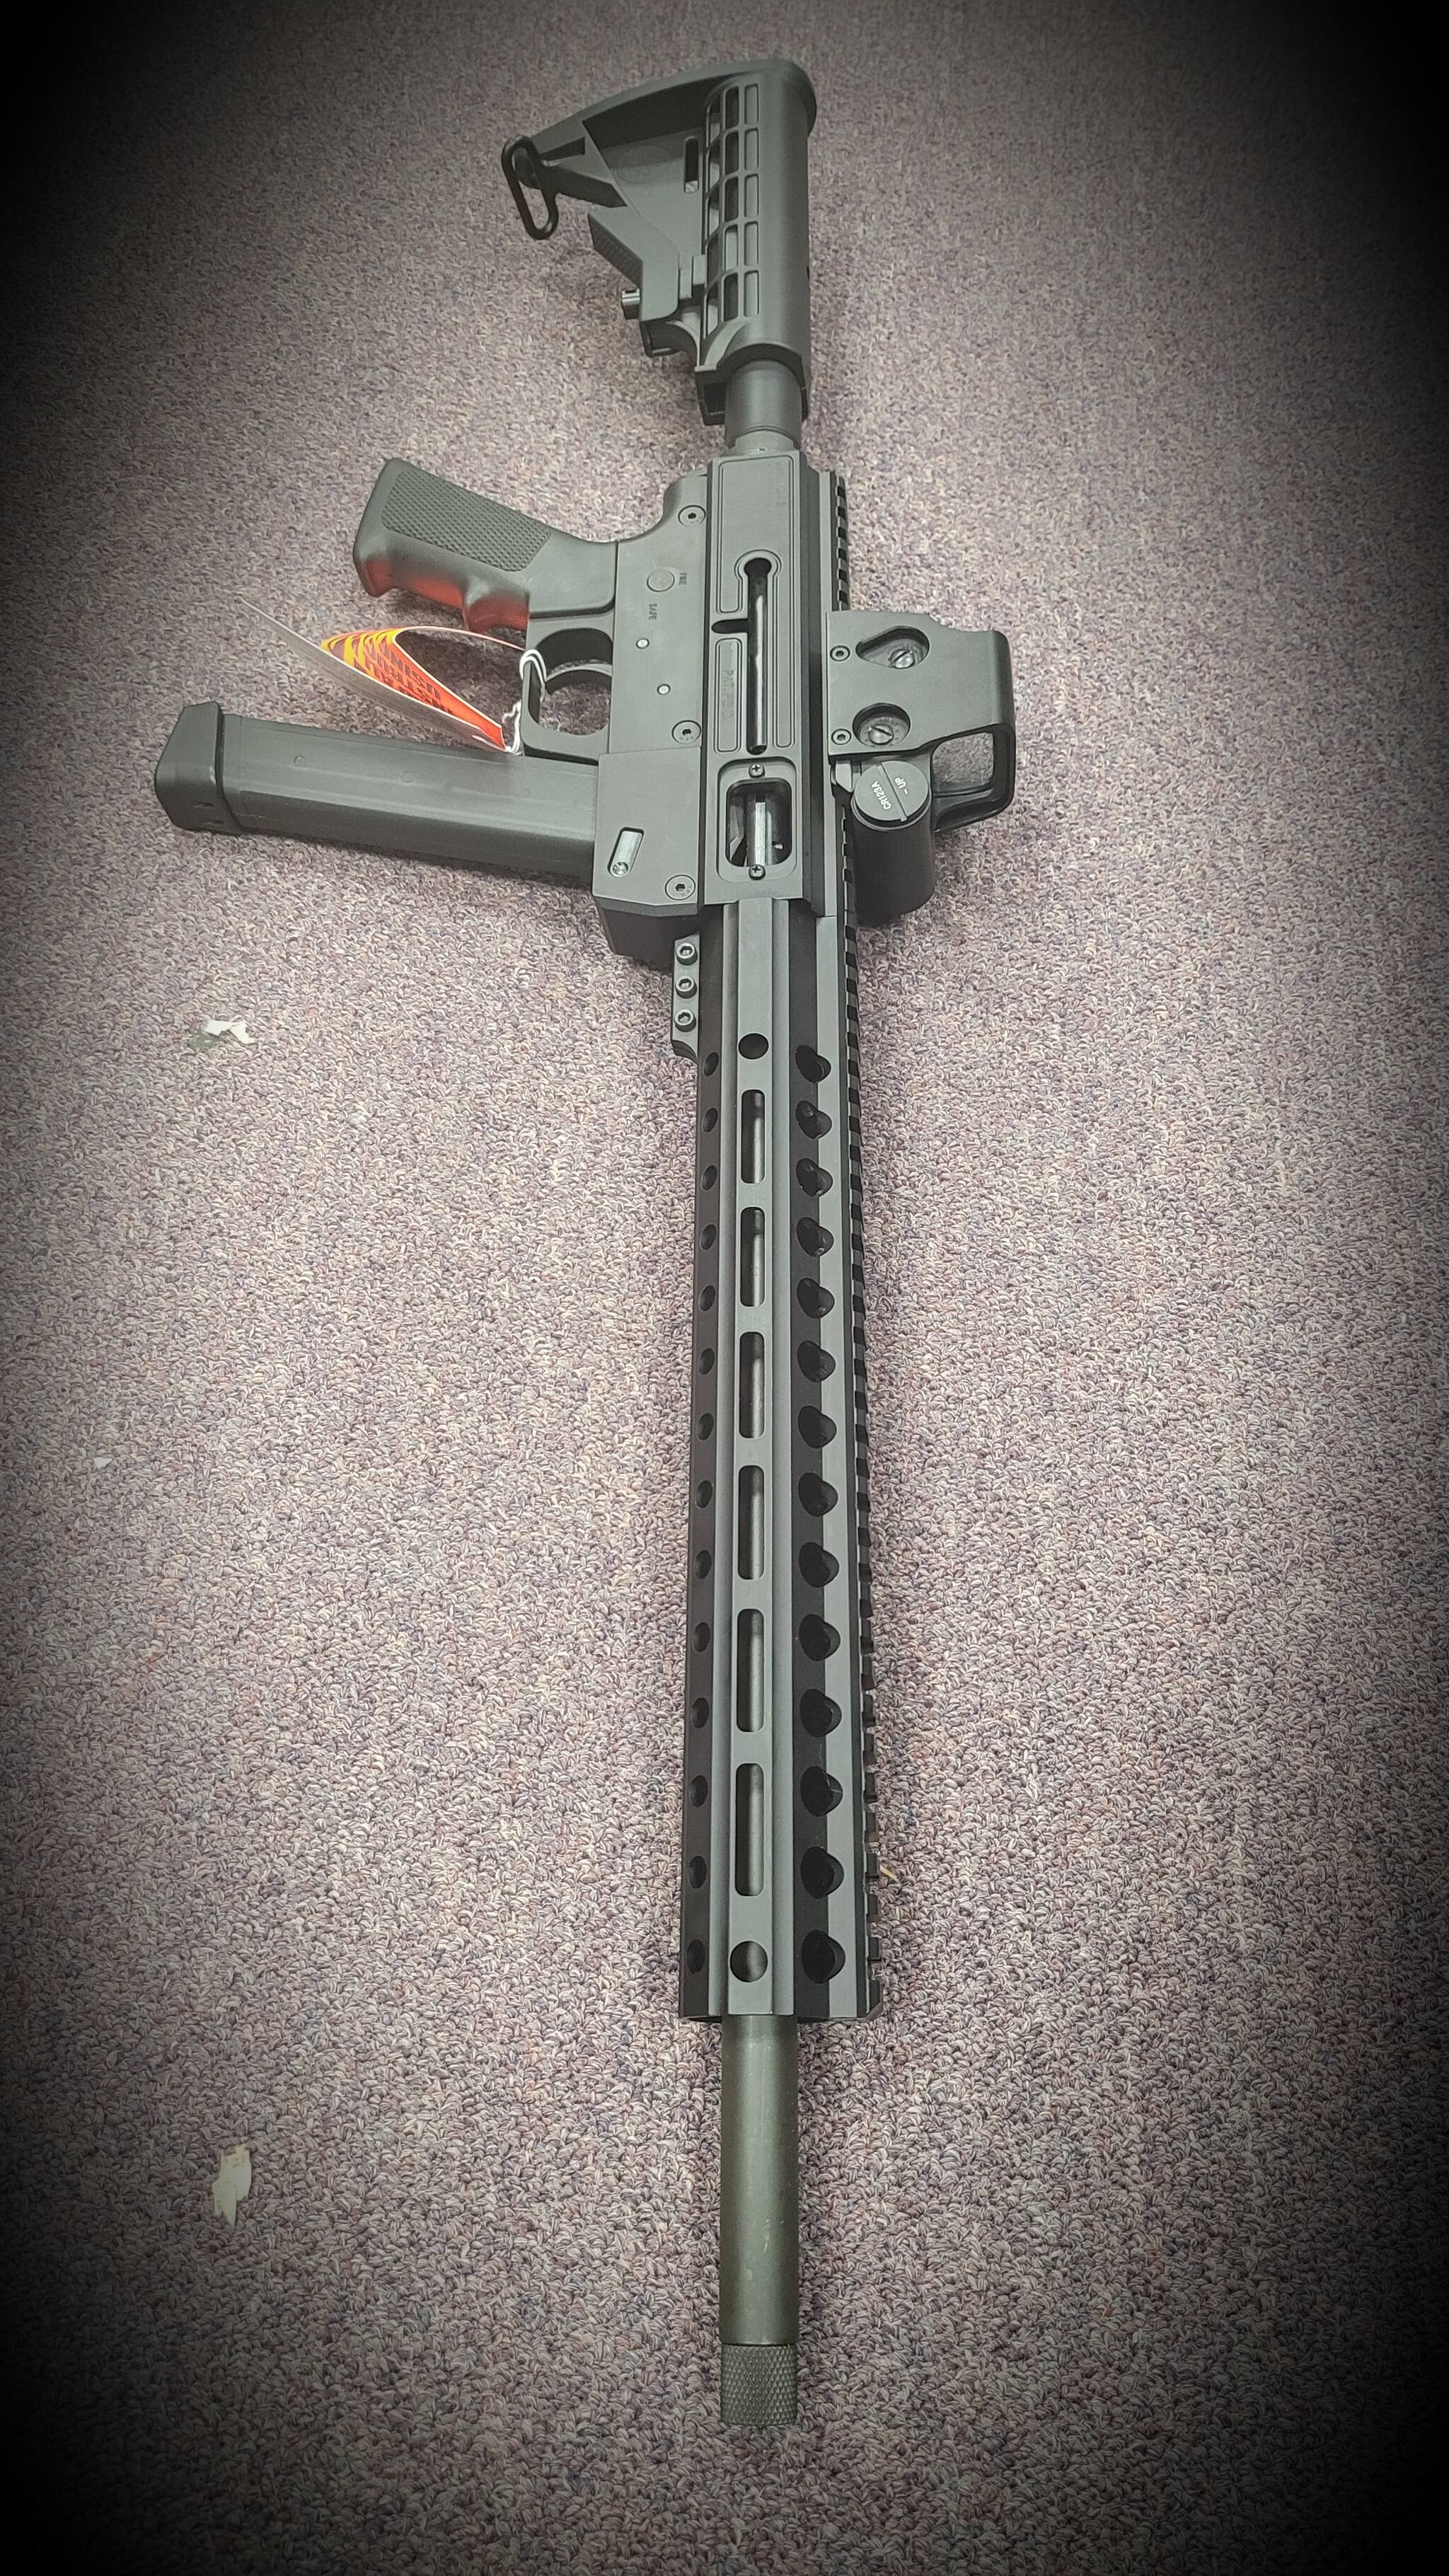 Image of JUST RIGHT CARBINE 10rd magazine Just Right Carbine Gen 3 9mm MLok Rail